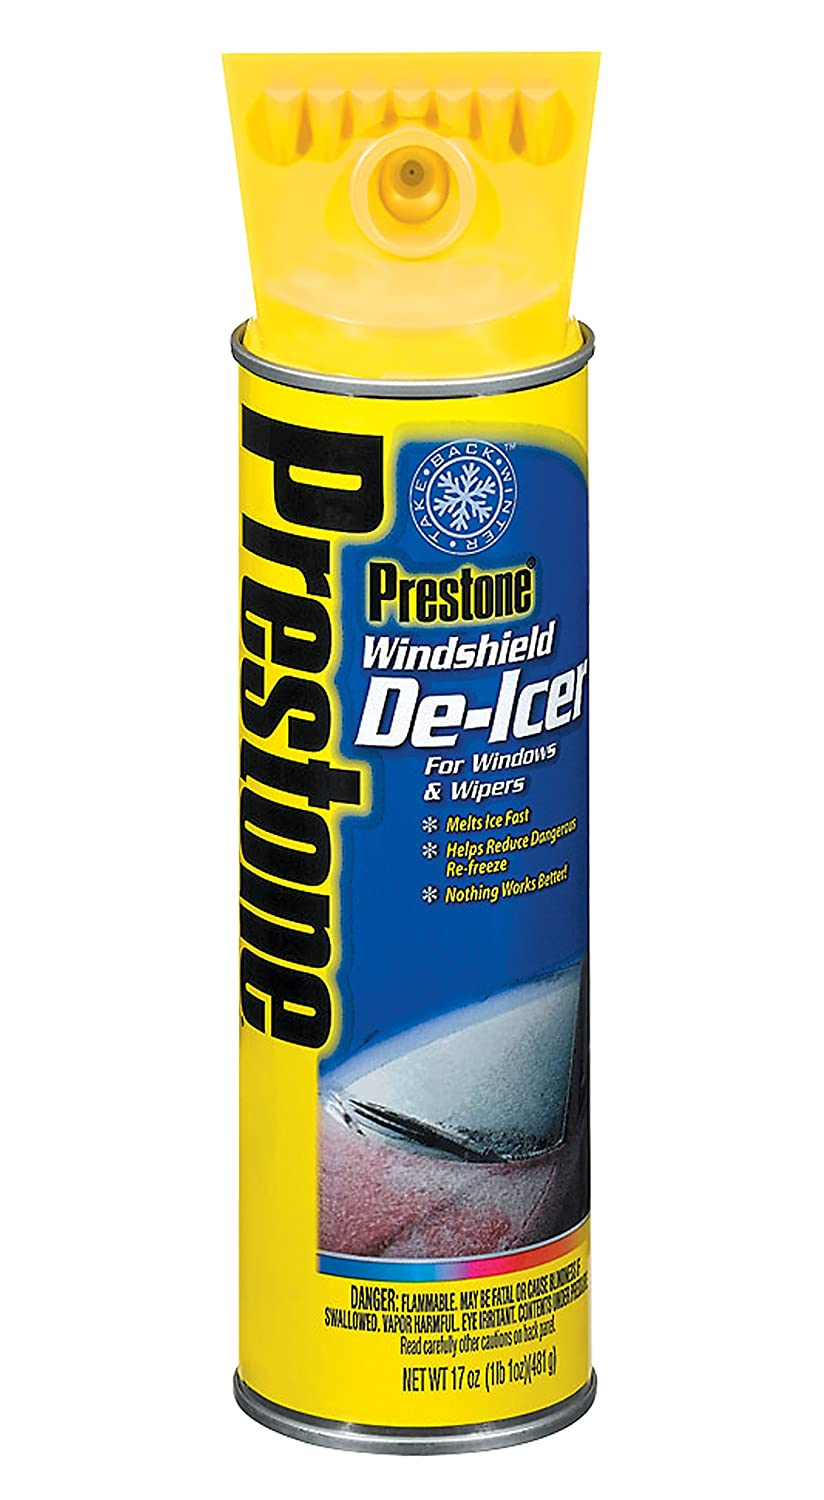 Prestone AS244 Windshield De-Icer - 17 oz. Aerosol